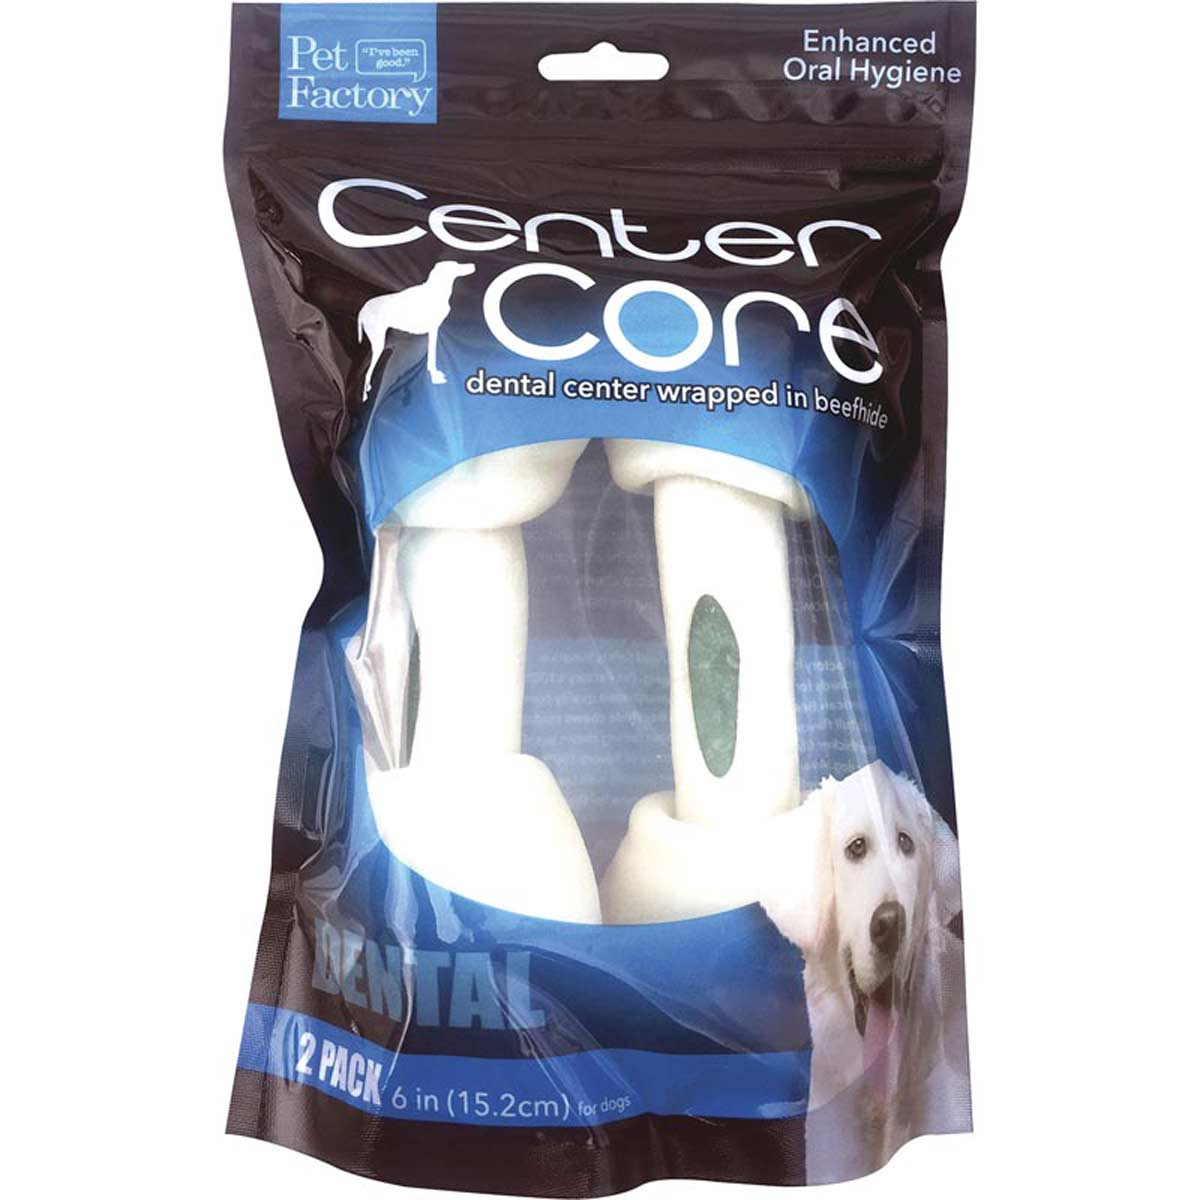 Pet Factory Center Core Dental 6-7 inch Dog Bones 2 Pack